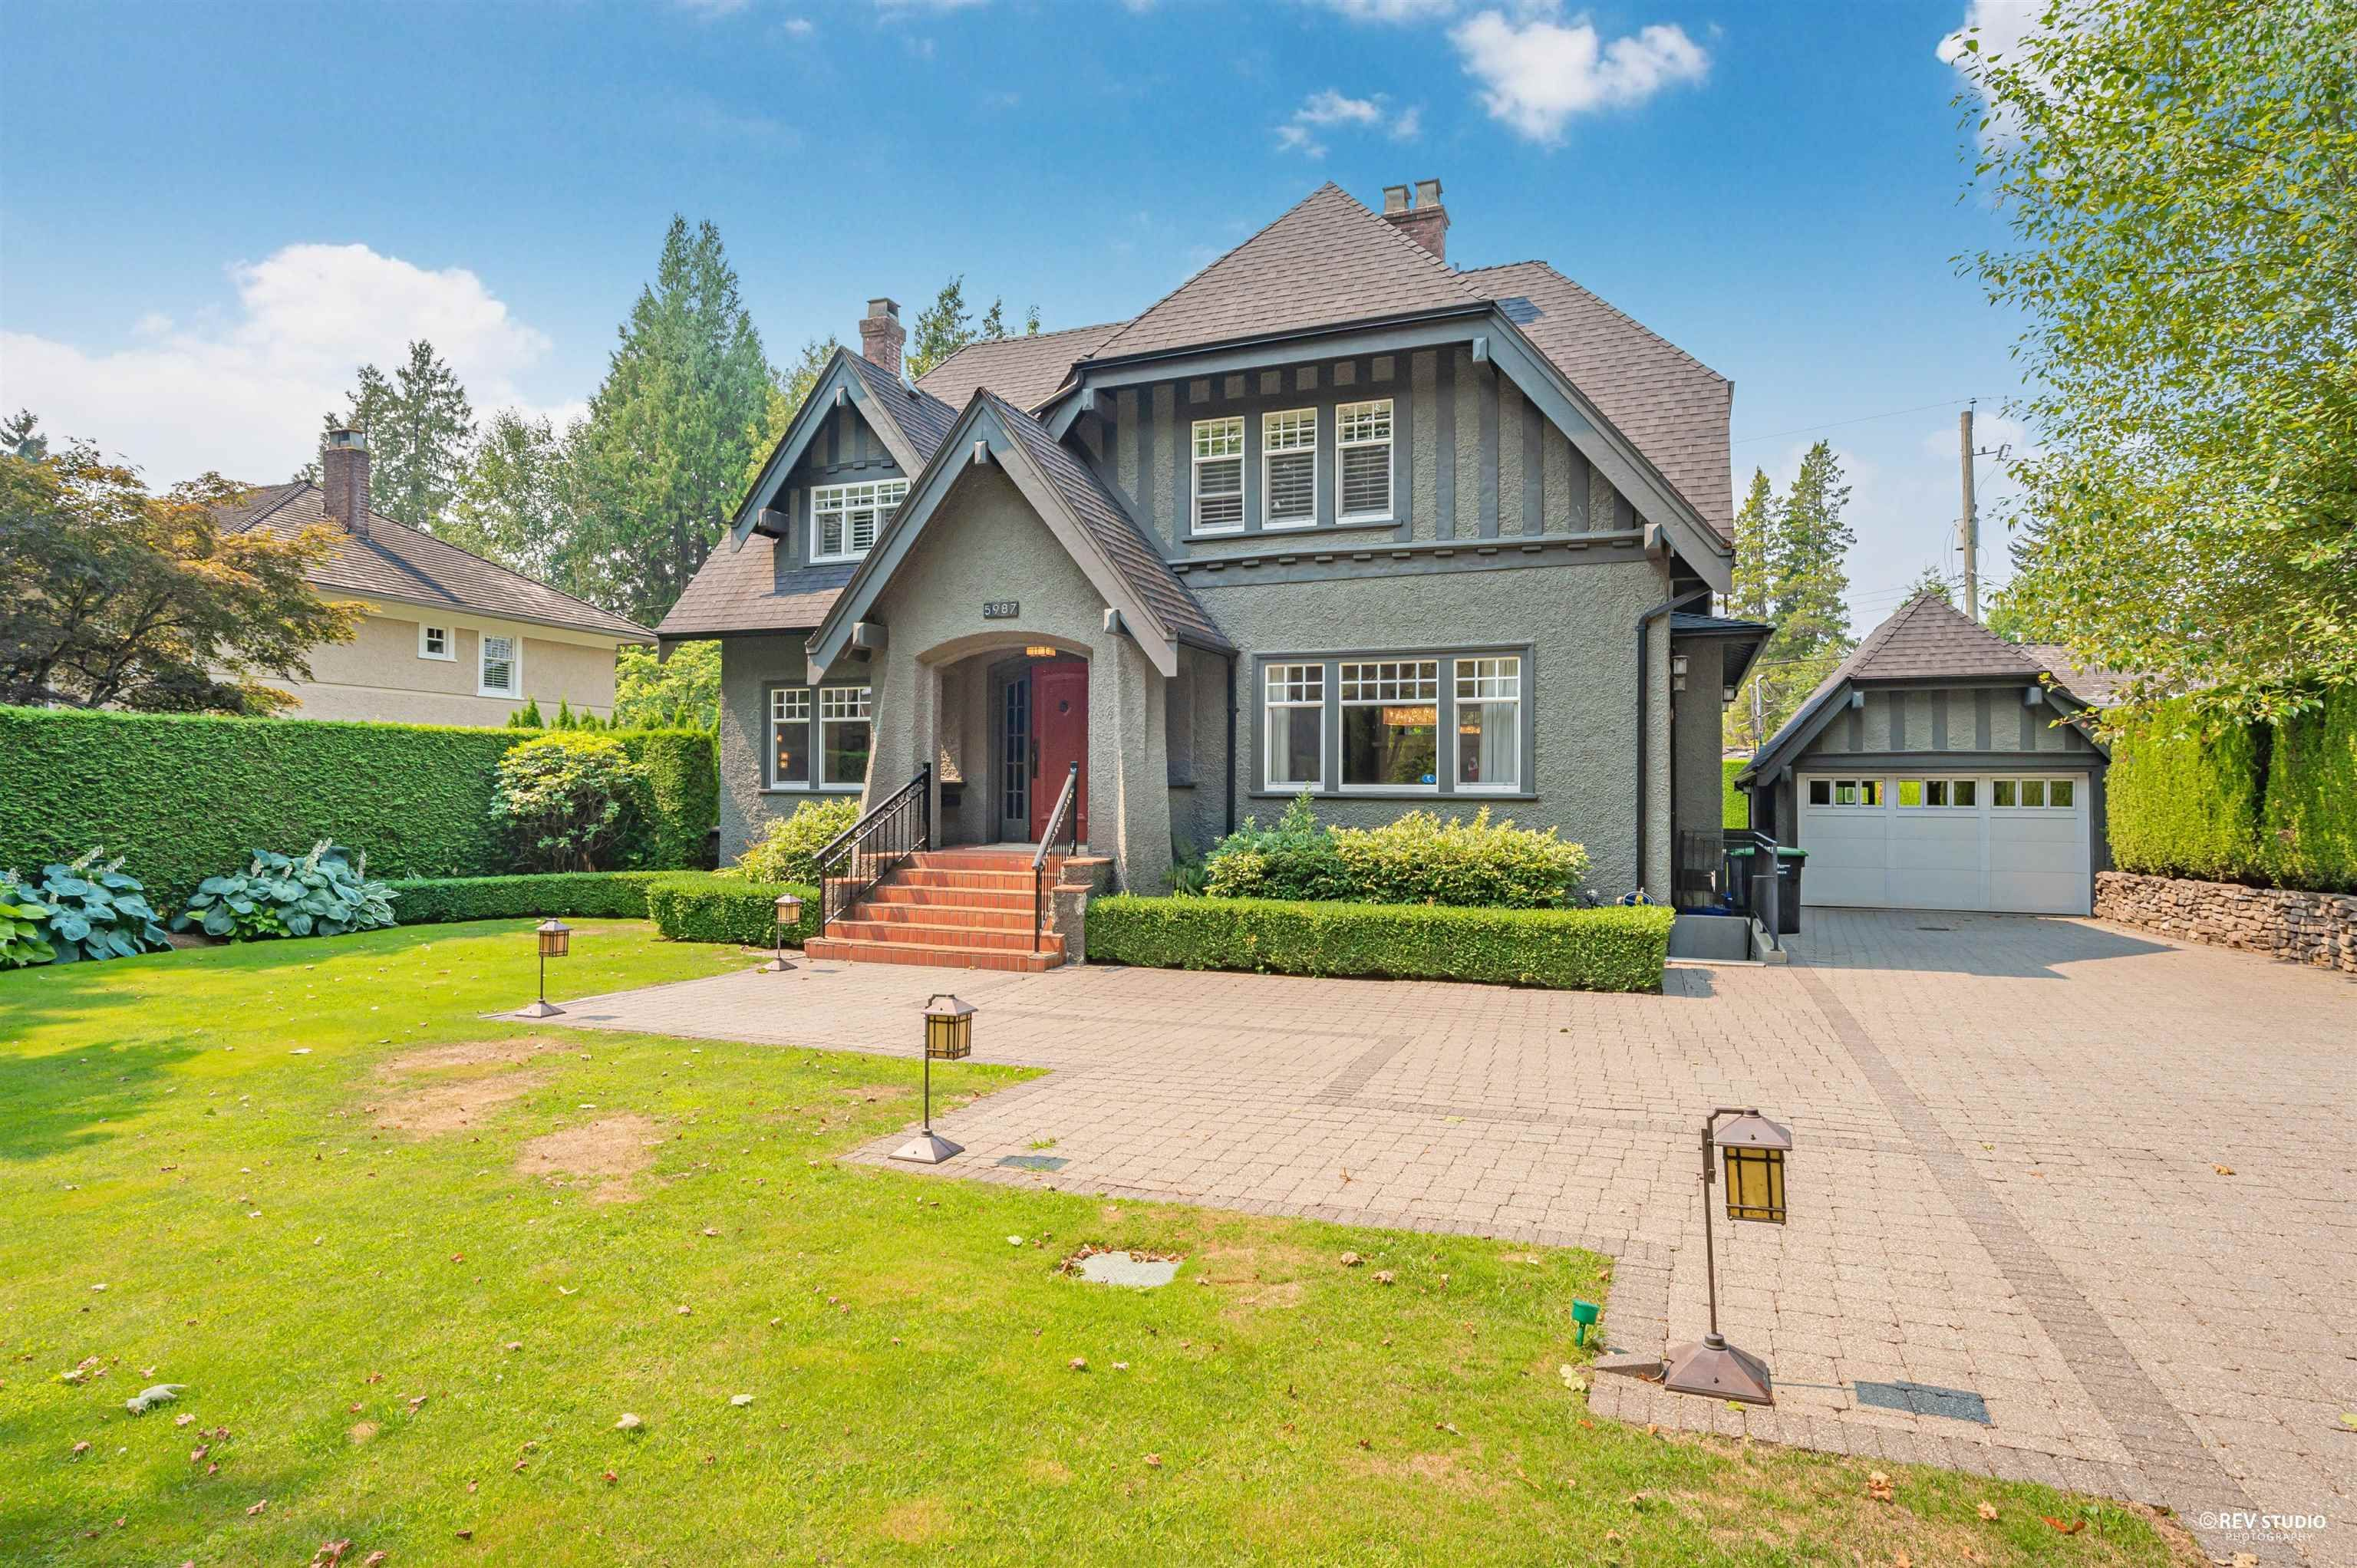 Main Photo: 5987 WILTSHIRE Street in Vancouver: South Granville House for sale (Vancouver West)  : MLS®# R2611344